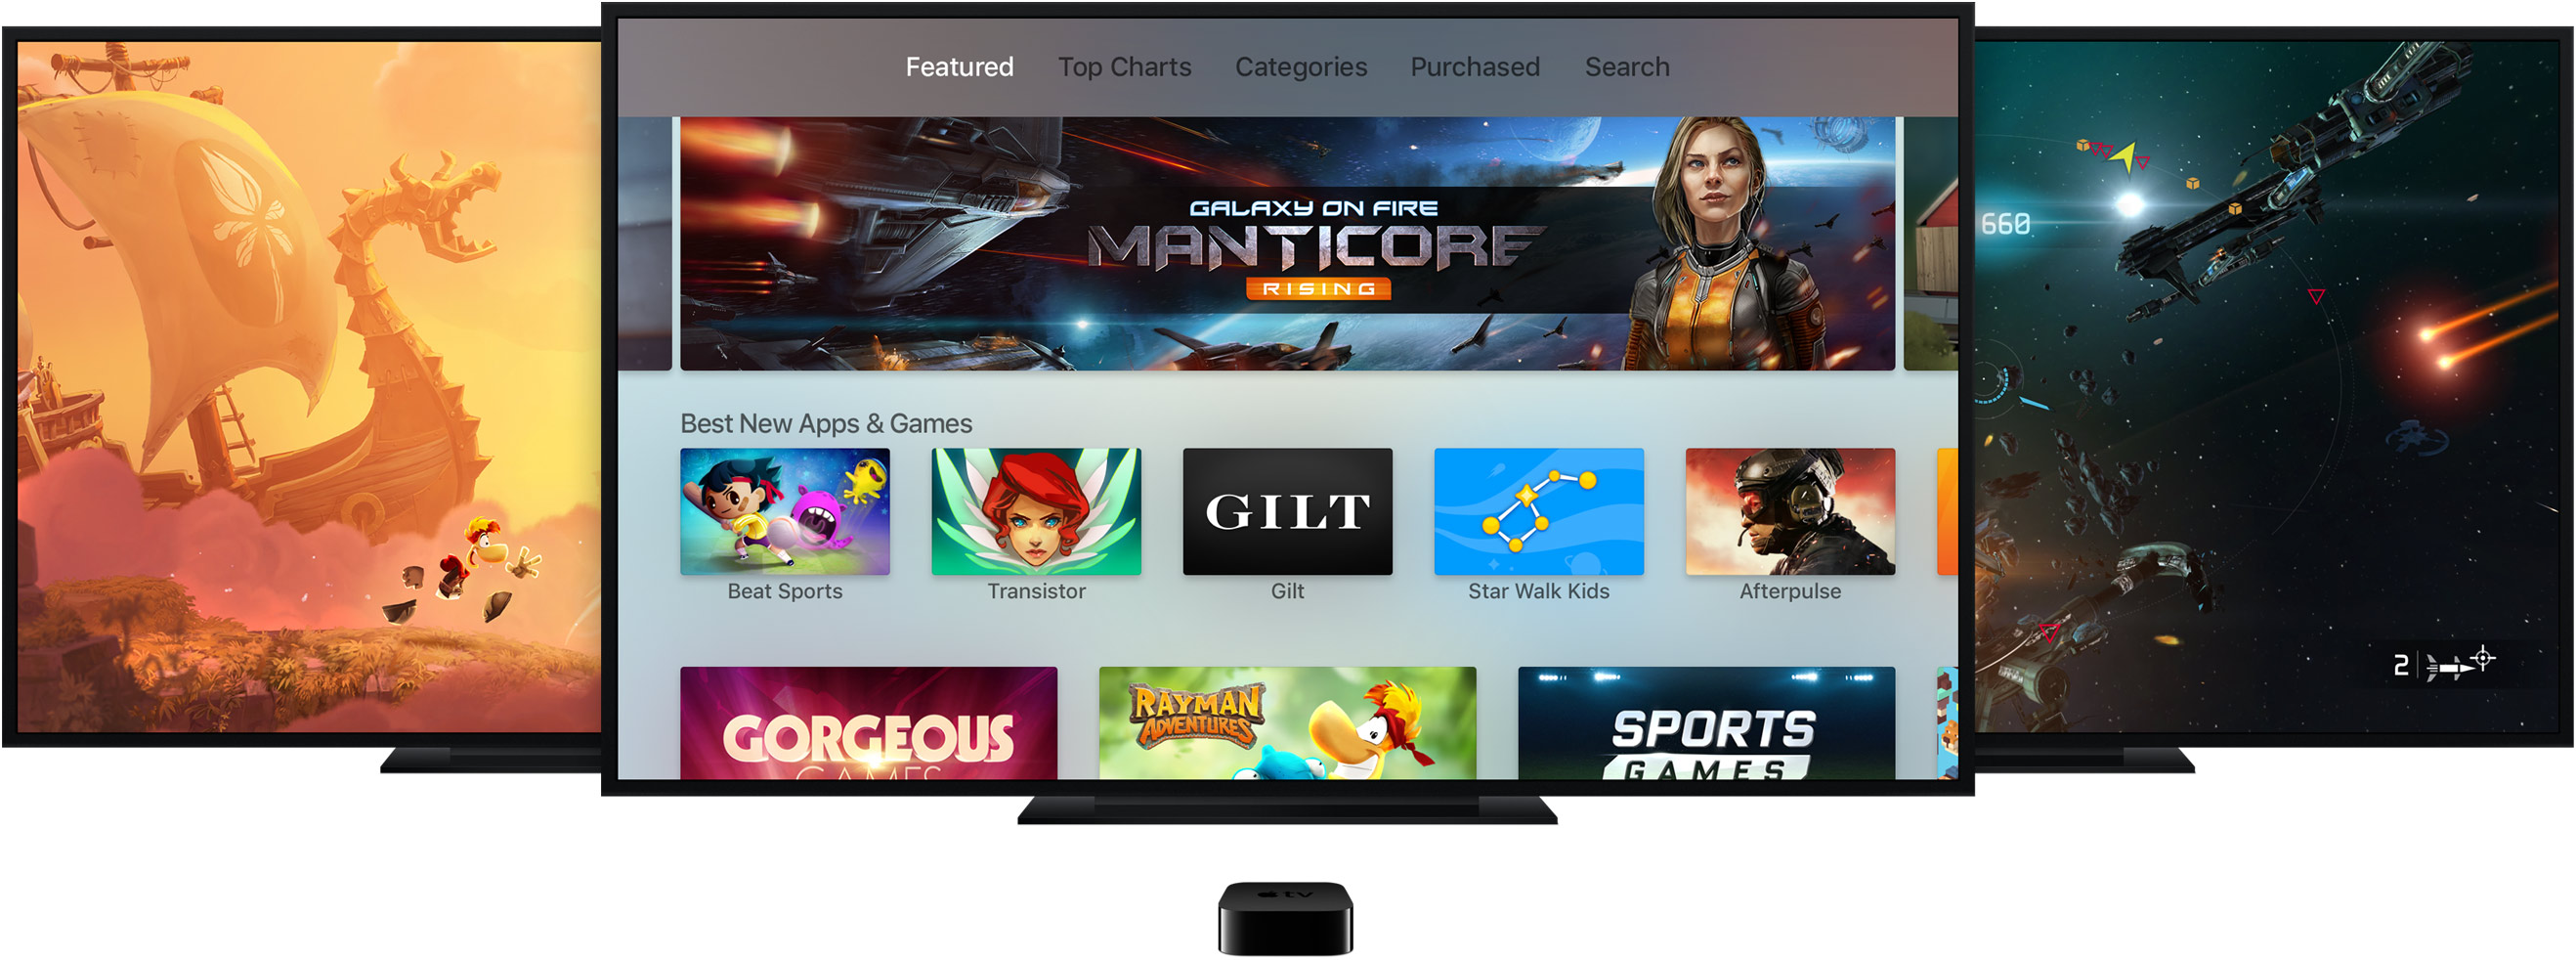 Apple TV apps games